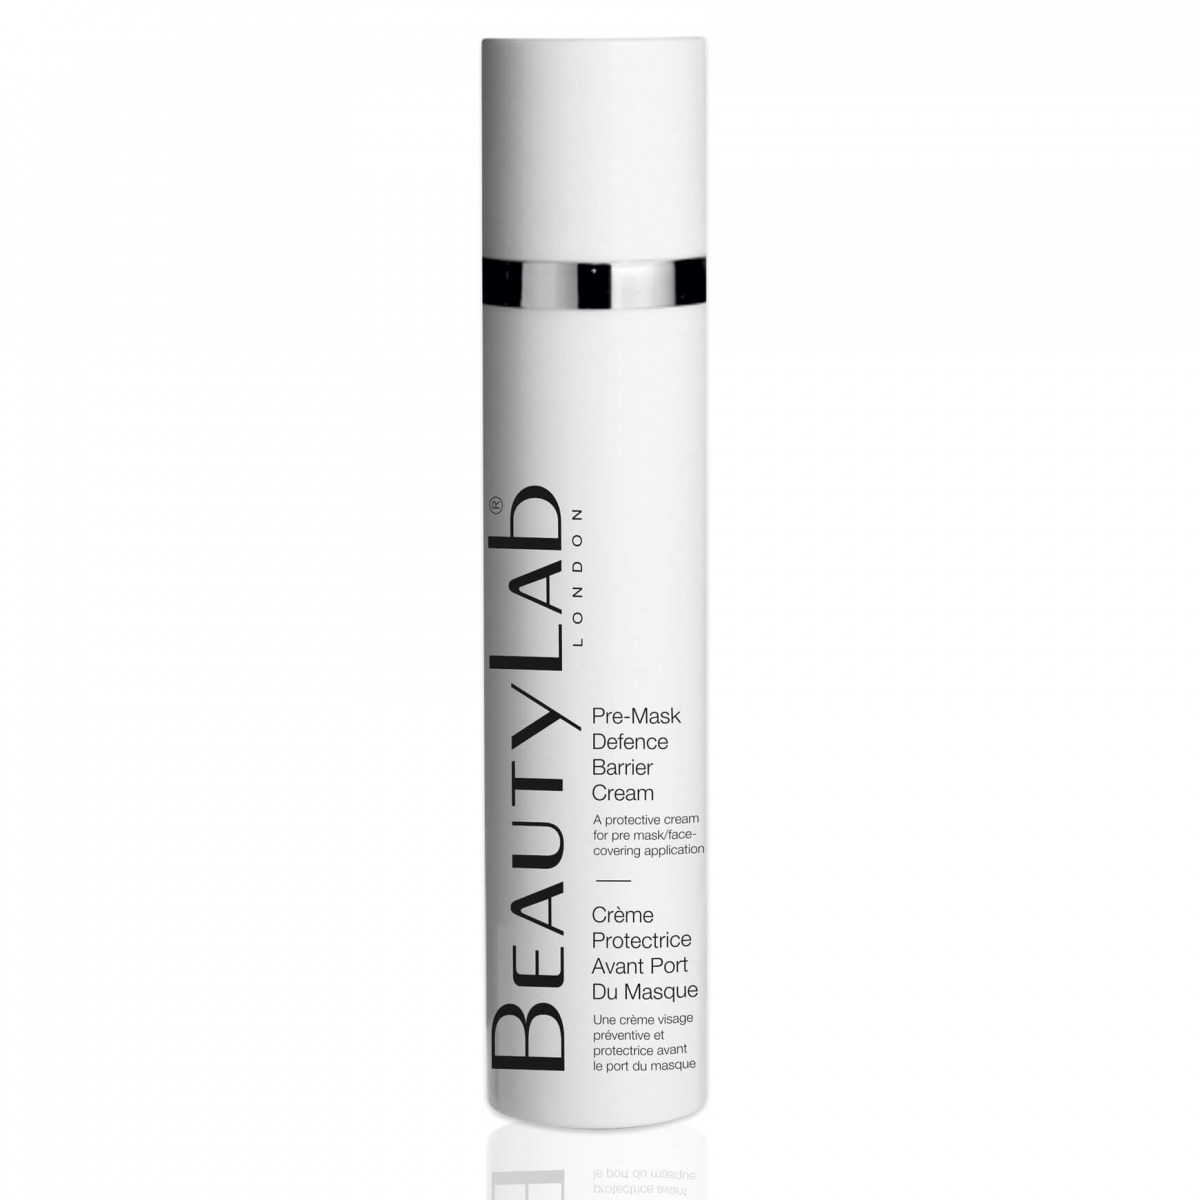 Pre-Mask Defence Barrier Cream